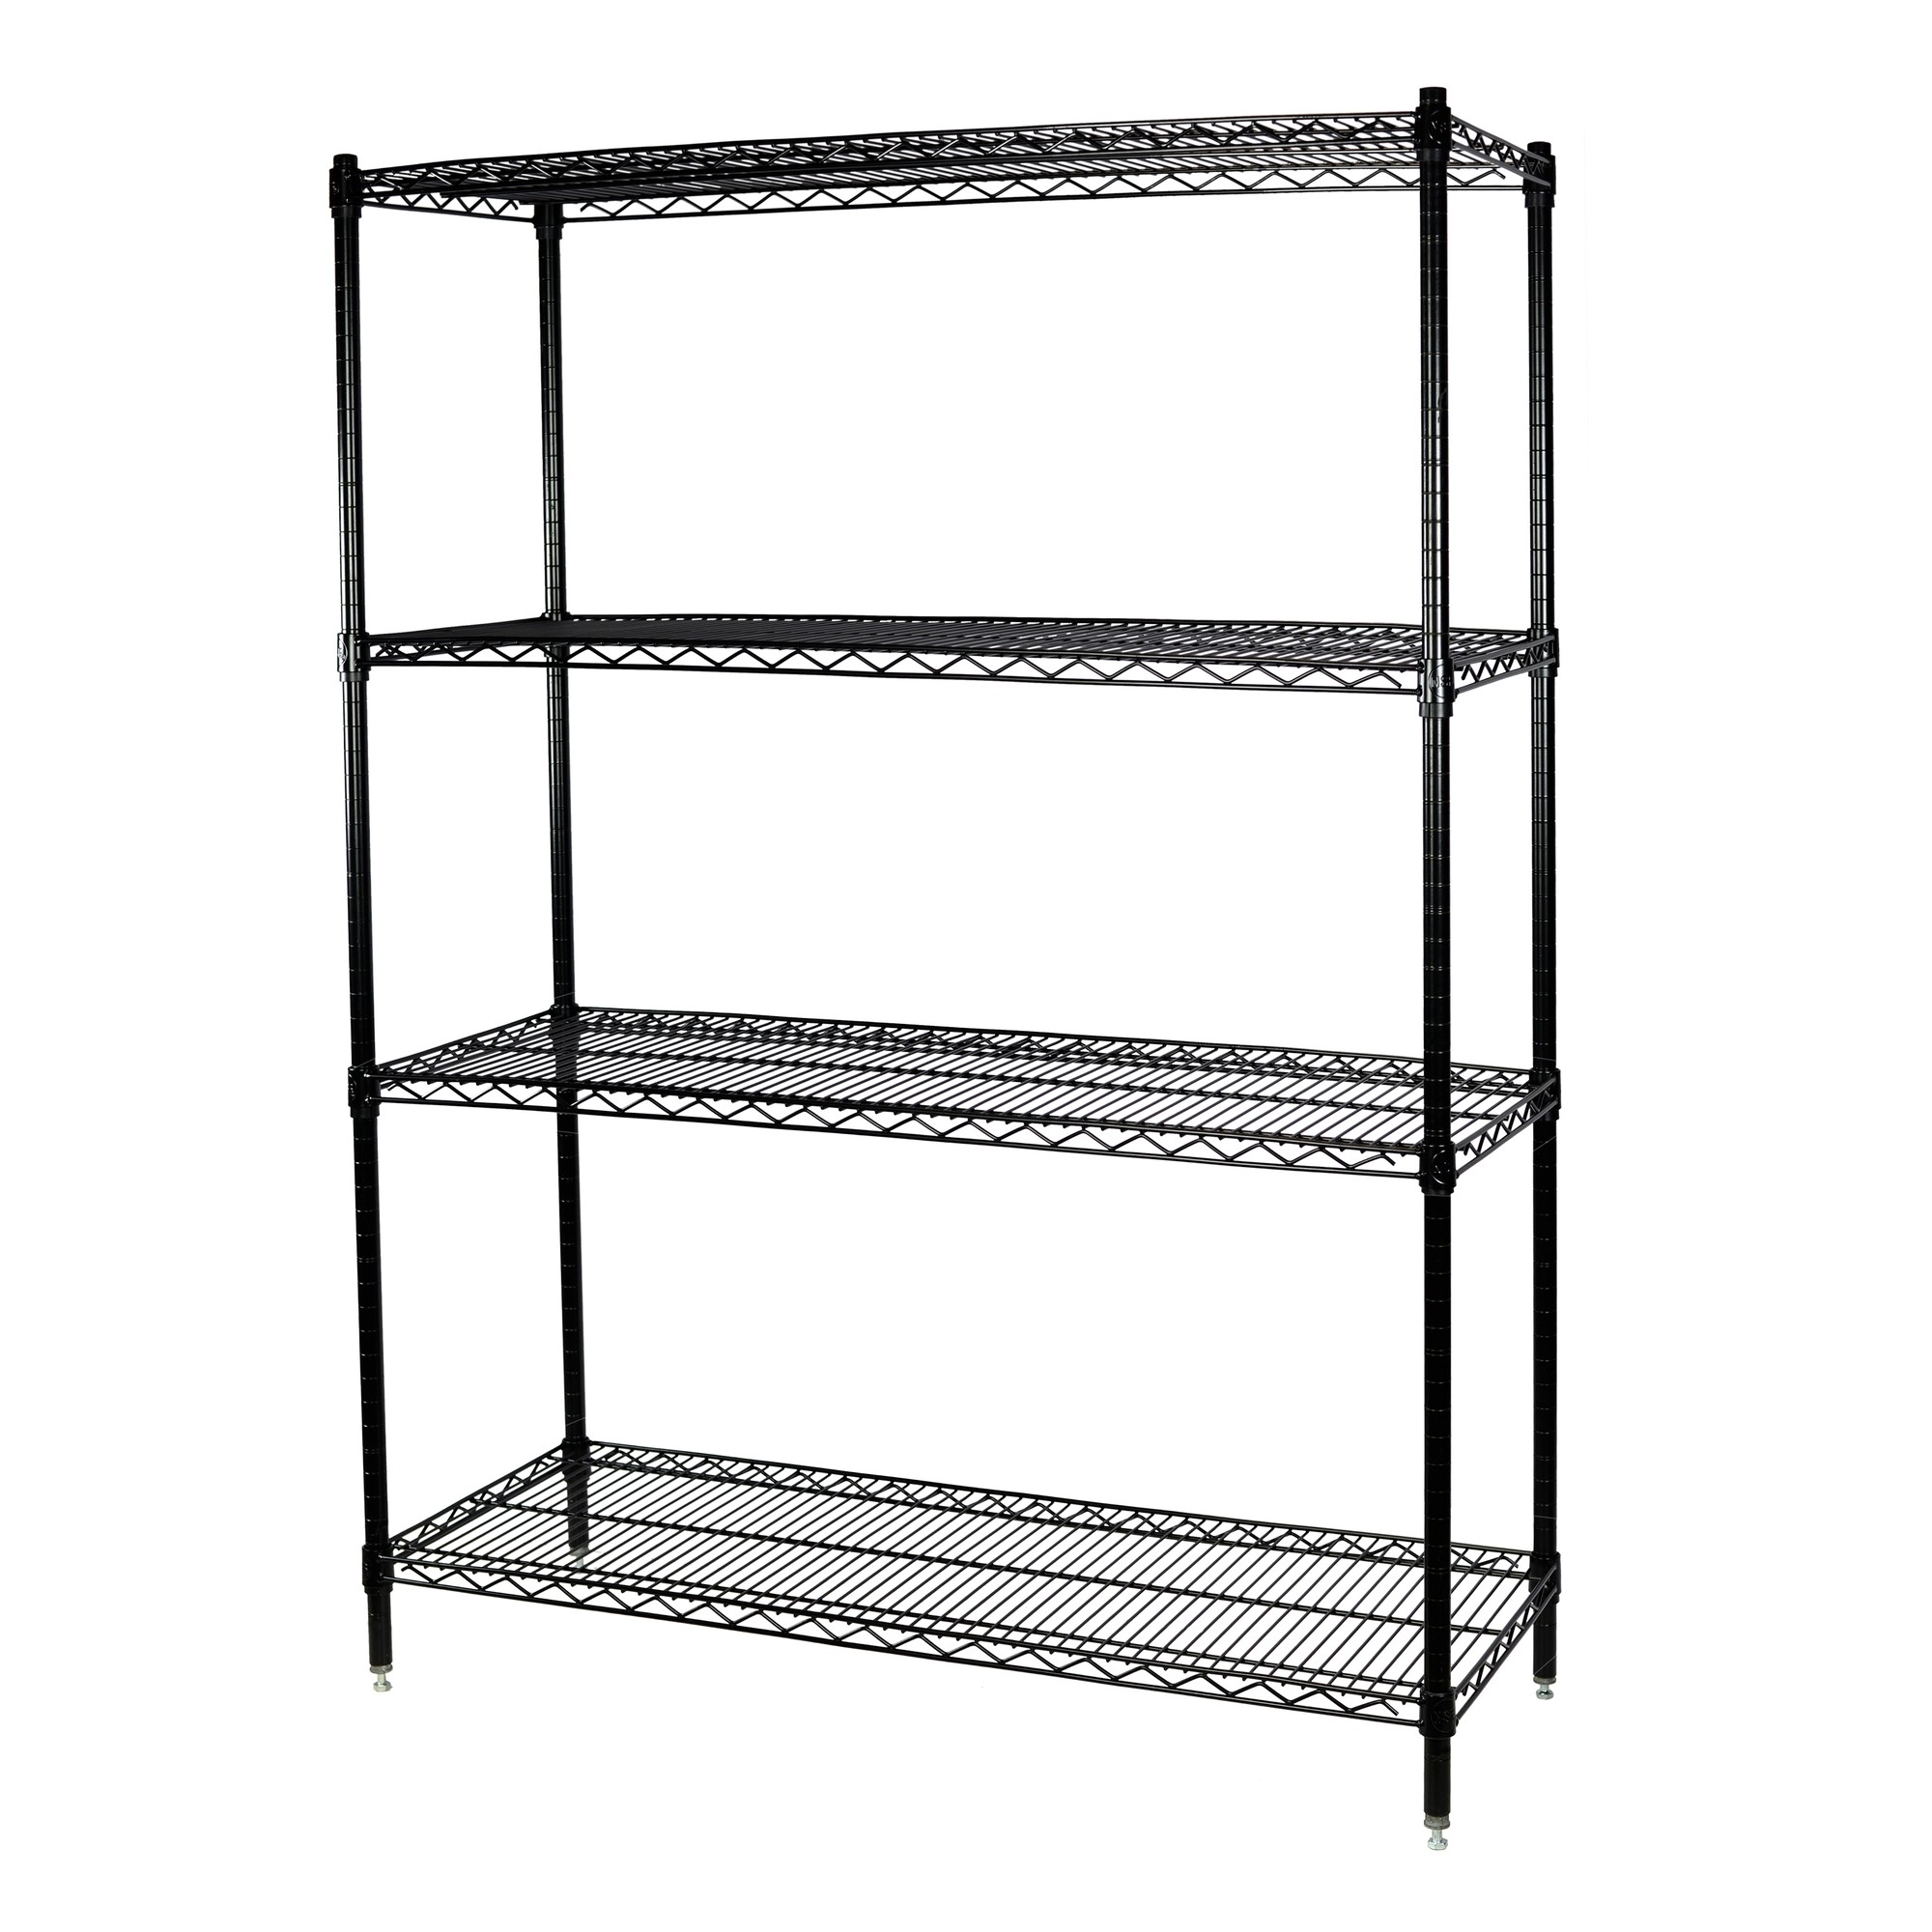 Storage Max Black Wire Shelving Unit, 24 x 60 x 74, 4 Shelves